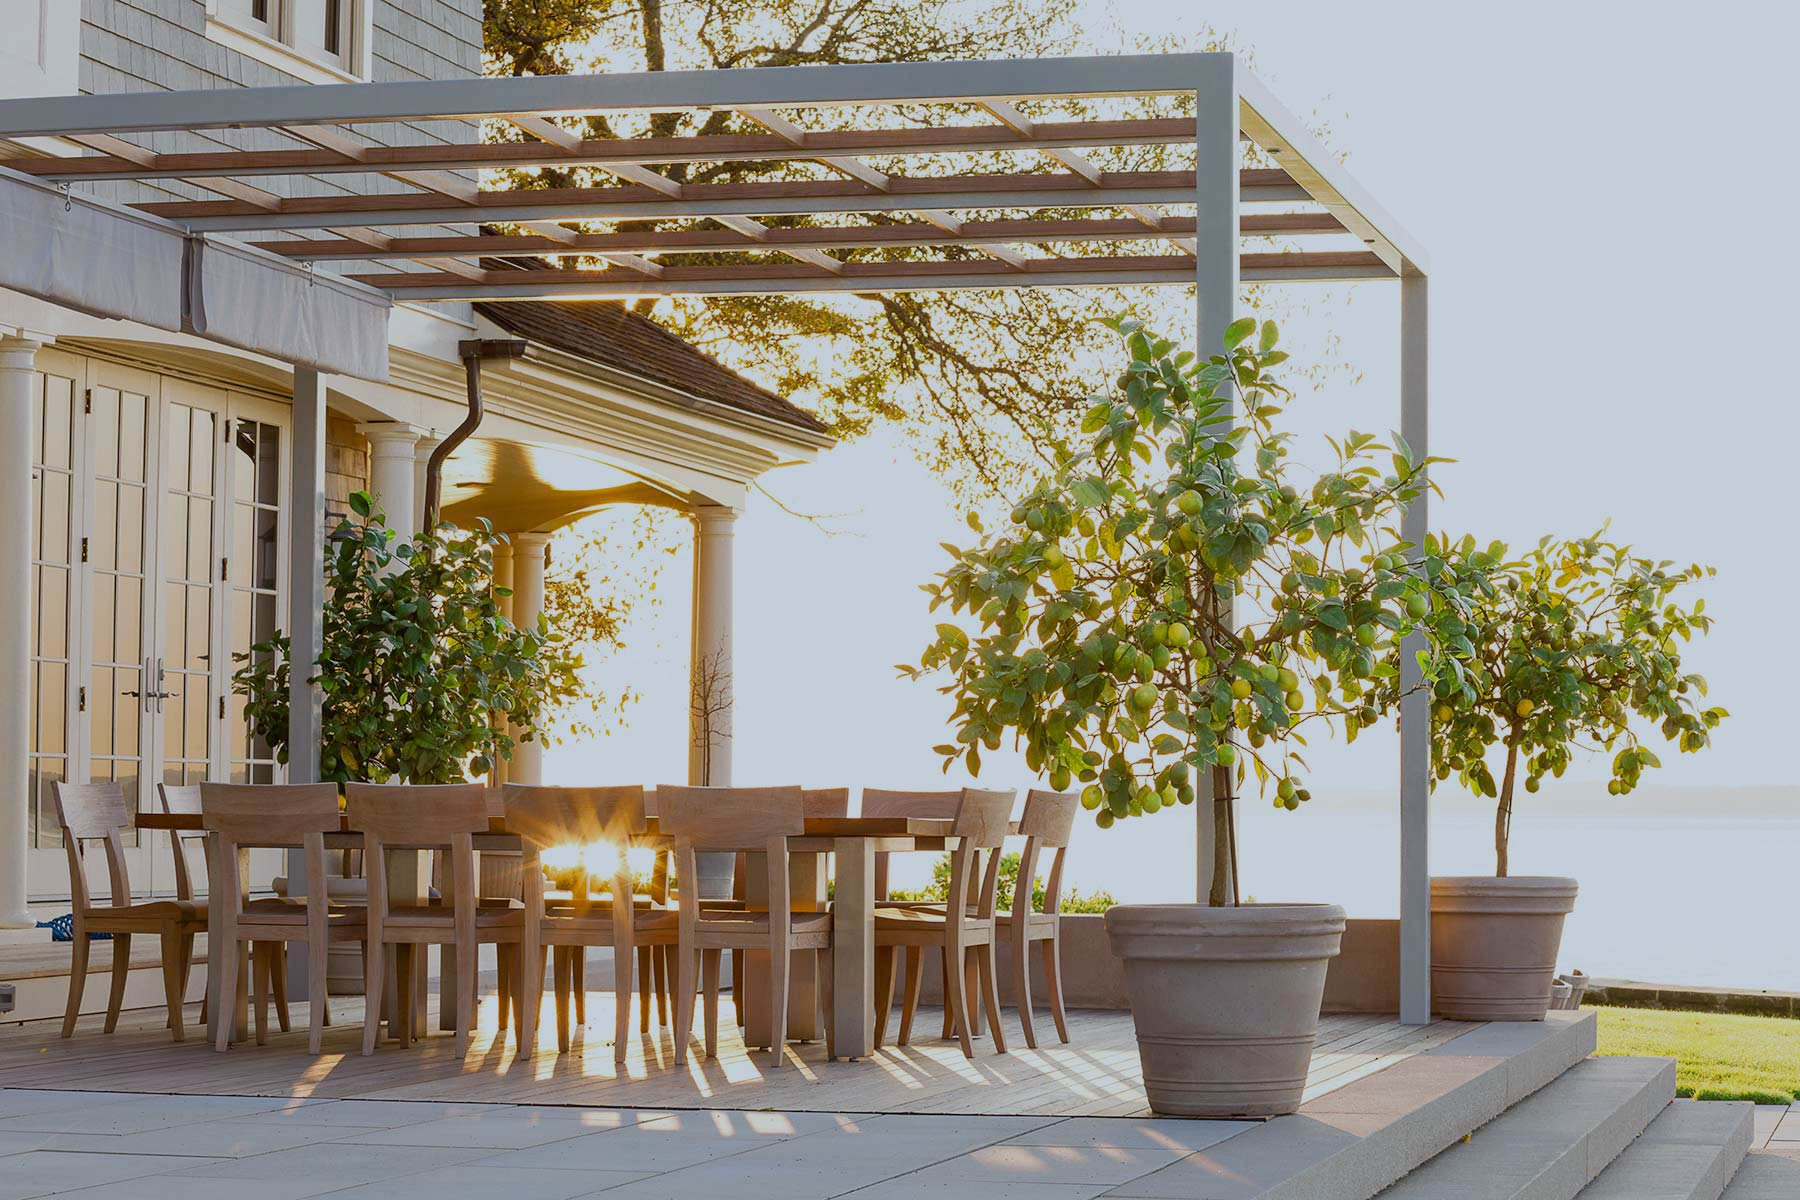 Westchester Deck and Pergola by Gunn Landscape Architecture